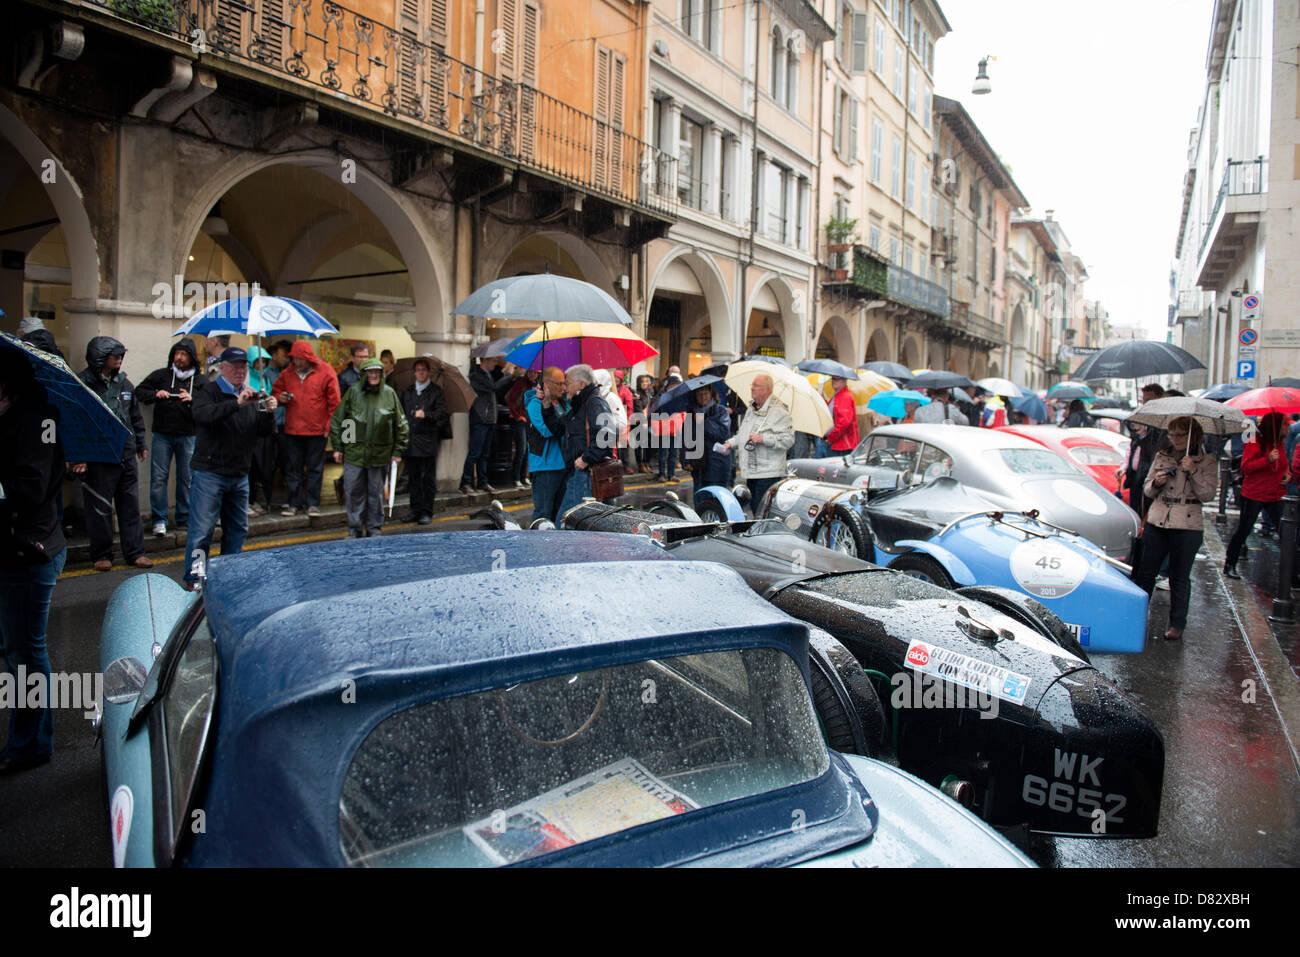 Brescia, Italy. 16th May 2013 - Mille Miglia 2013 - The first day at Brescia/Italy on 16th May 2013. Credit:  Johann - Stock Image